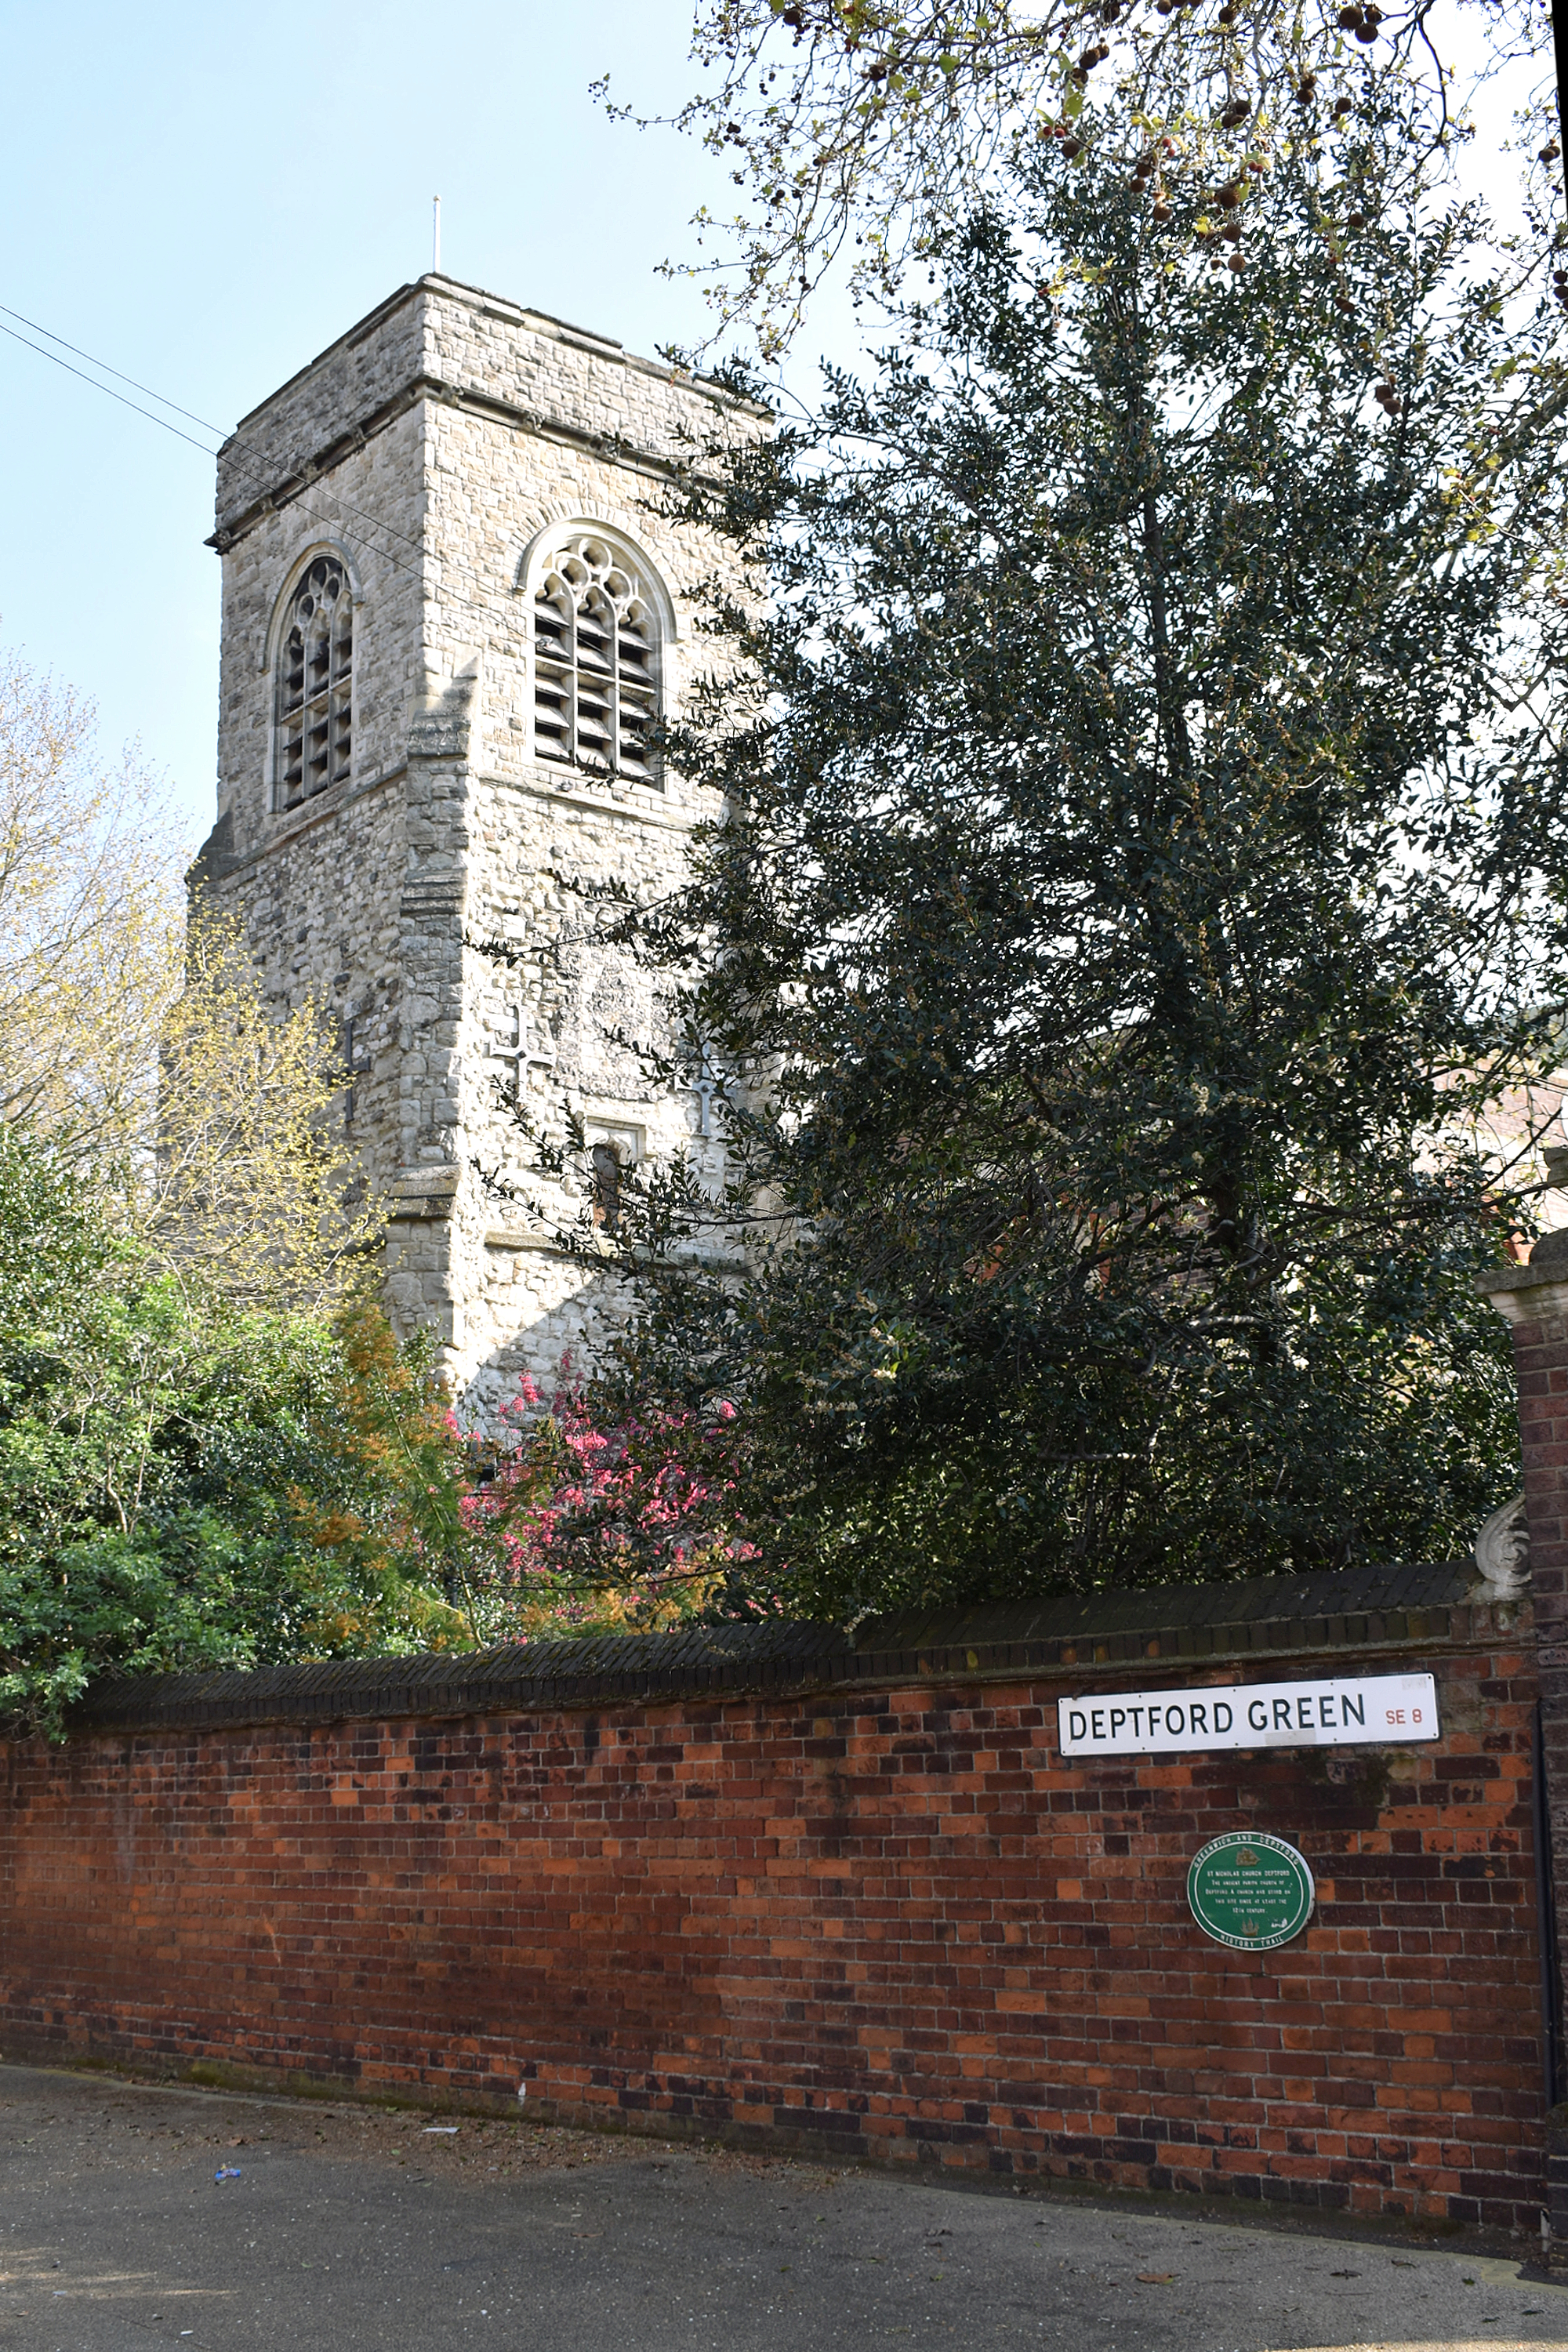 view of stone church tower behind trees